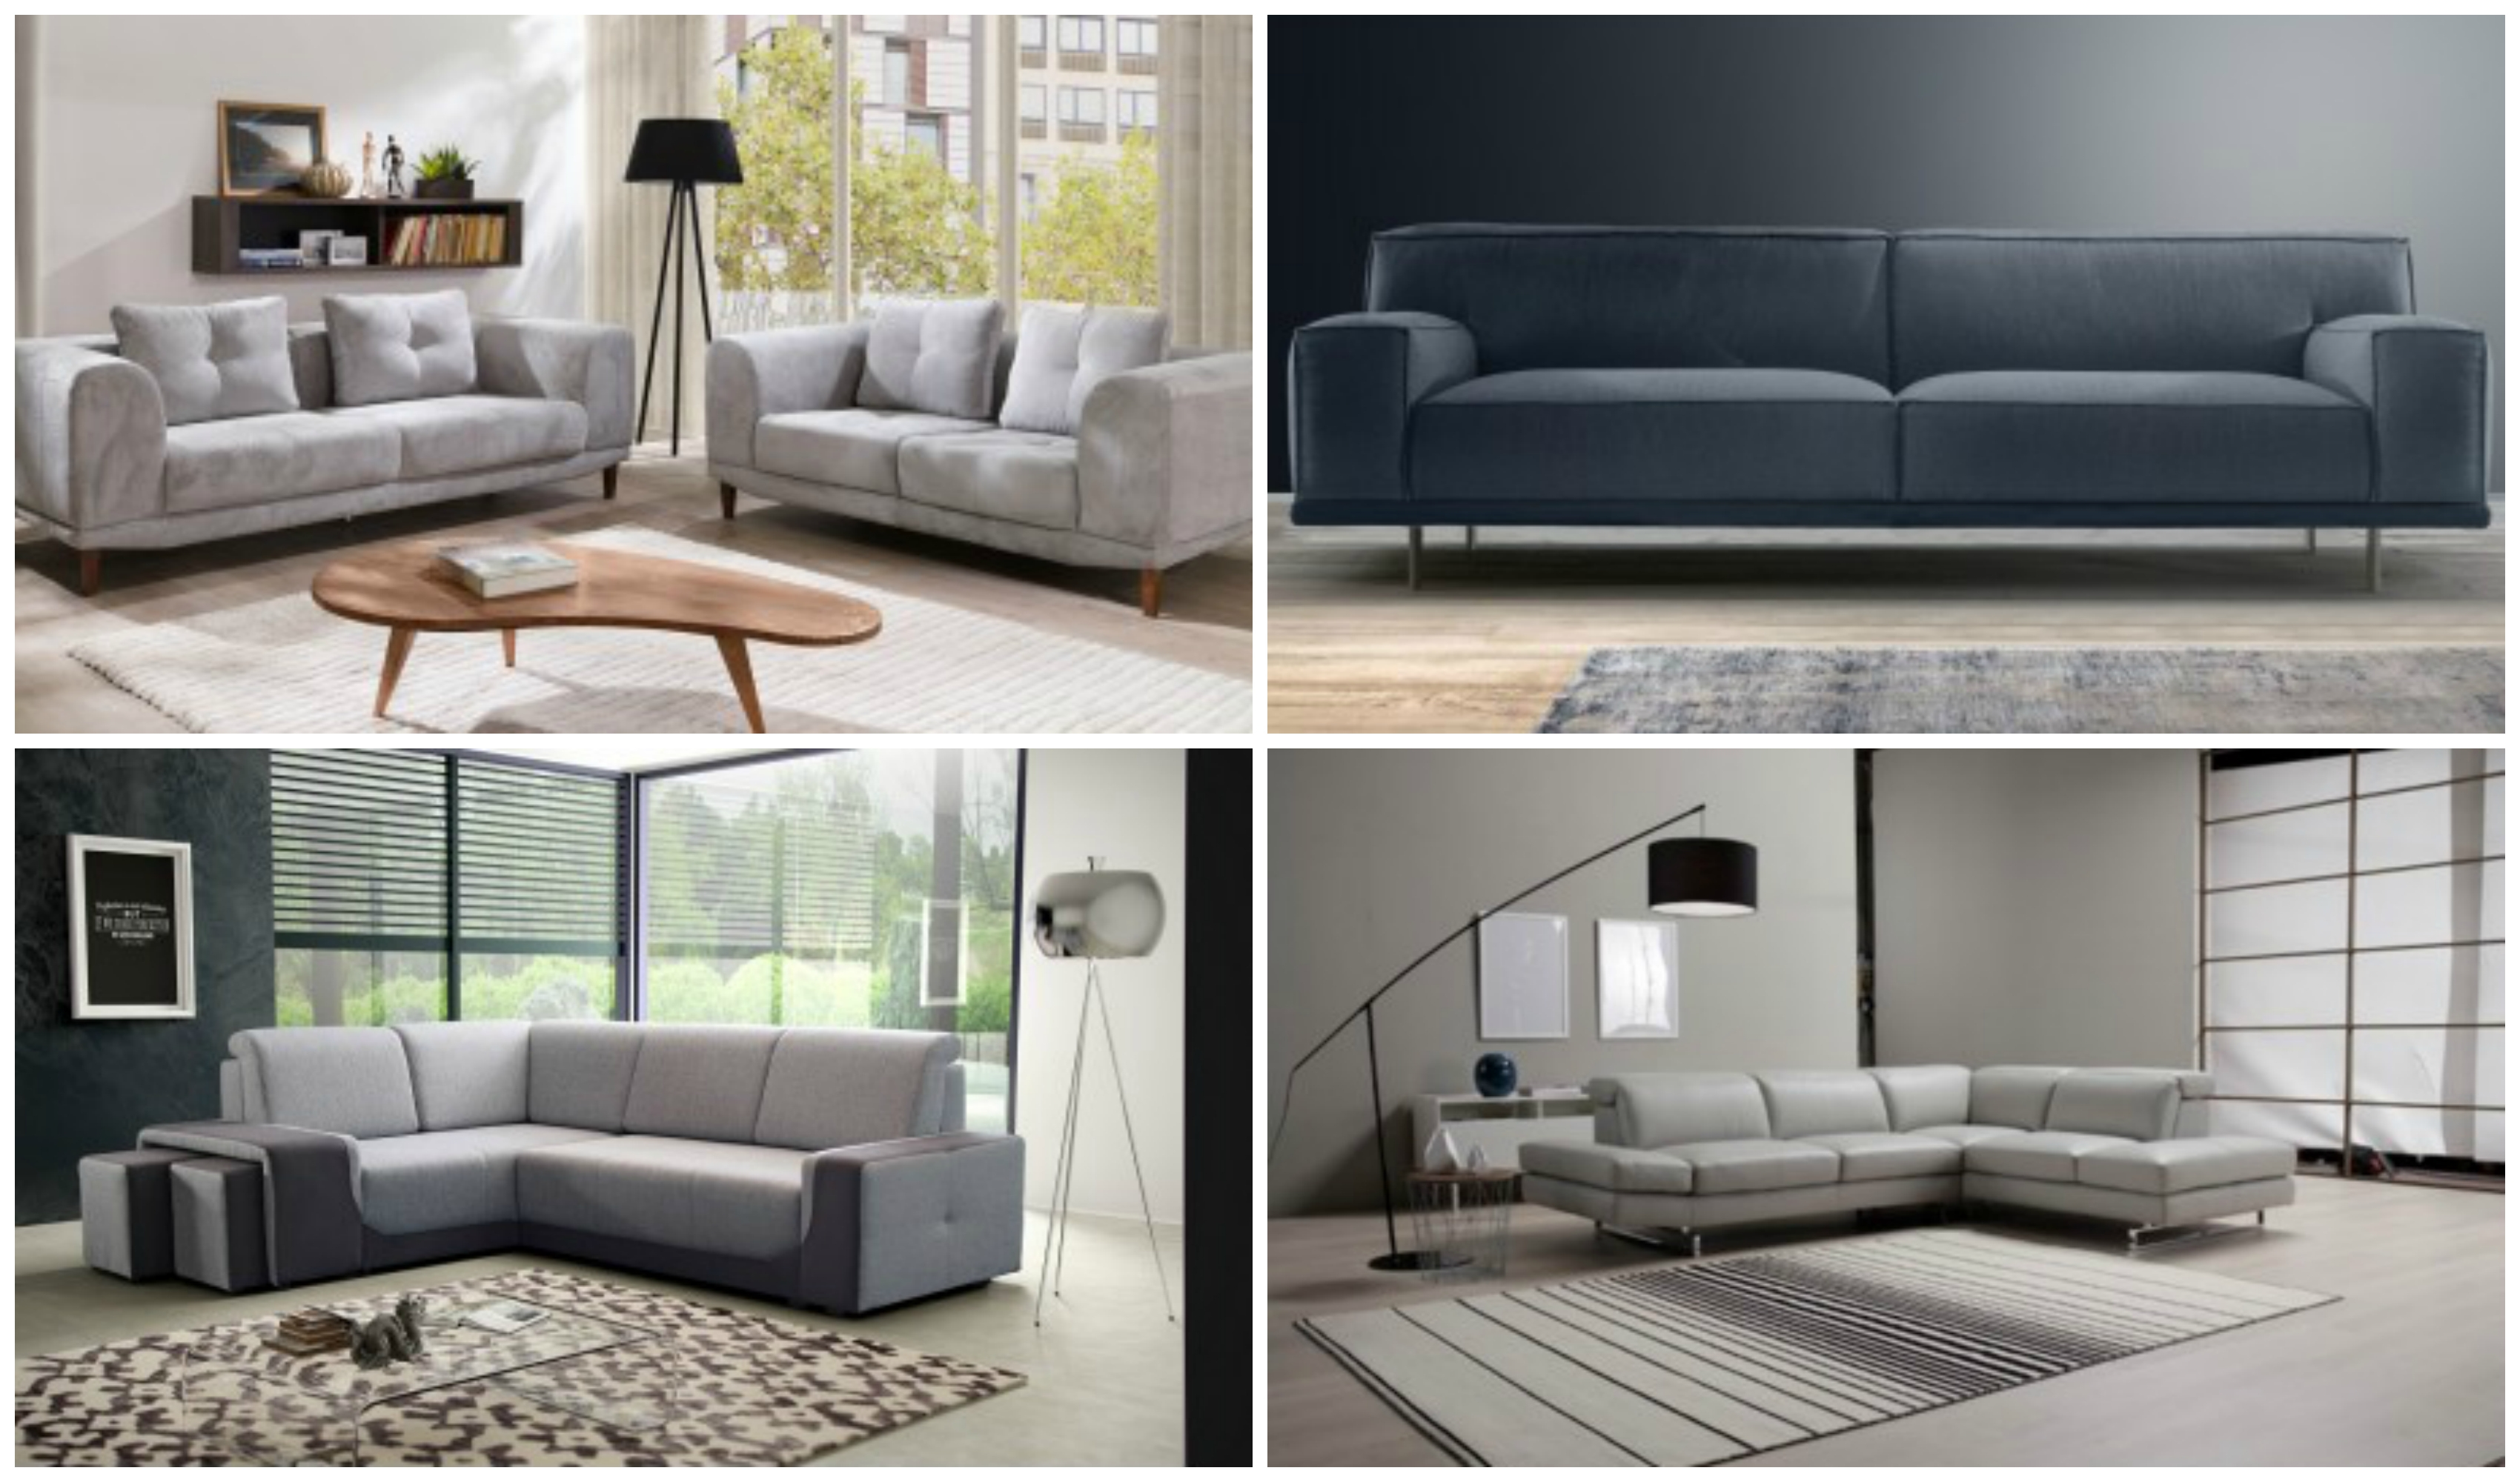 A grey sofa for the living room – a piece of furniture providing many possibilities